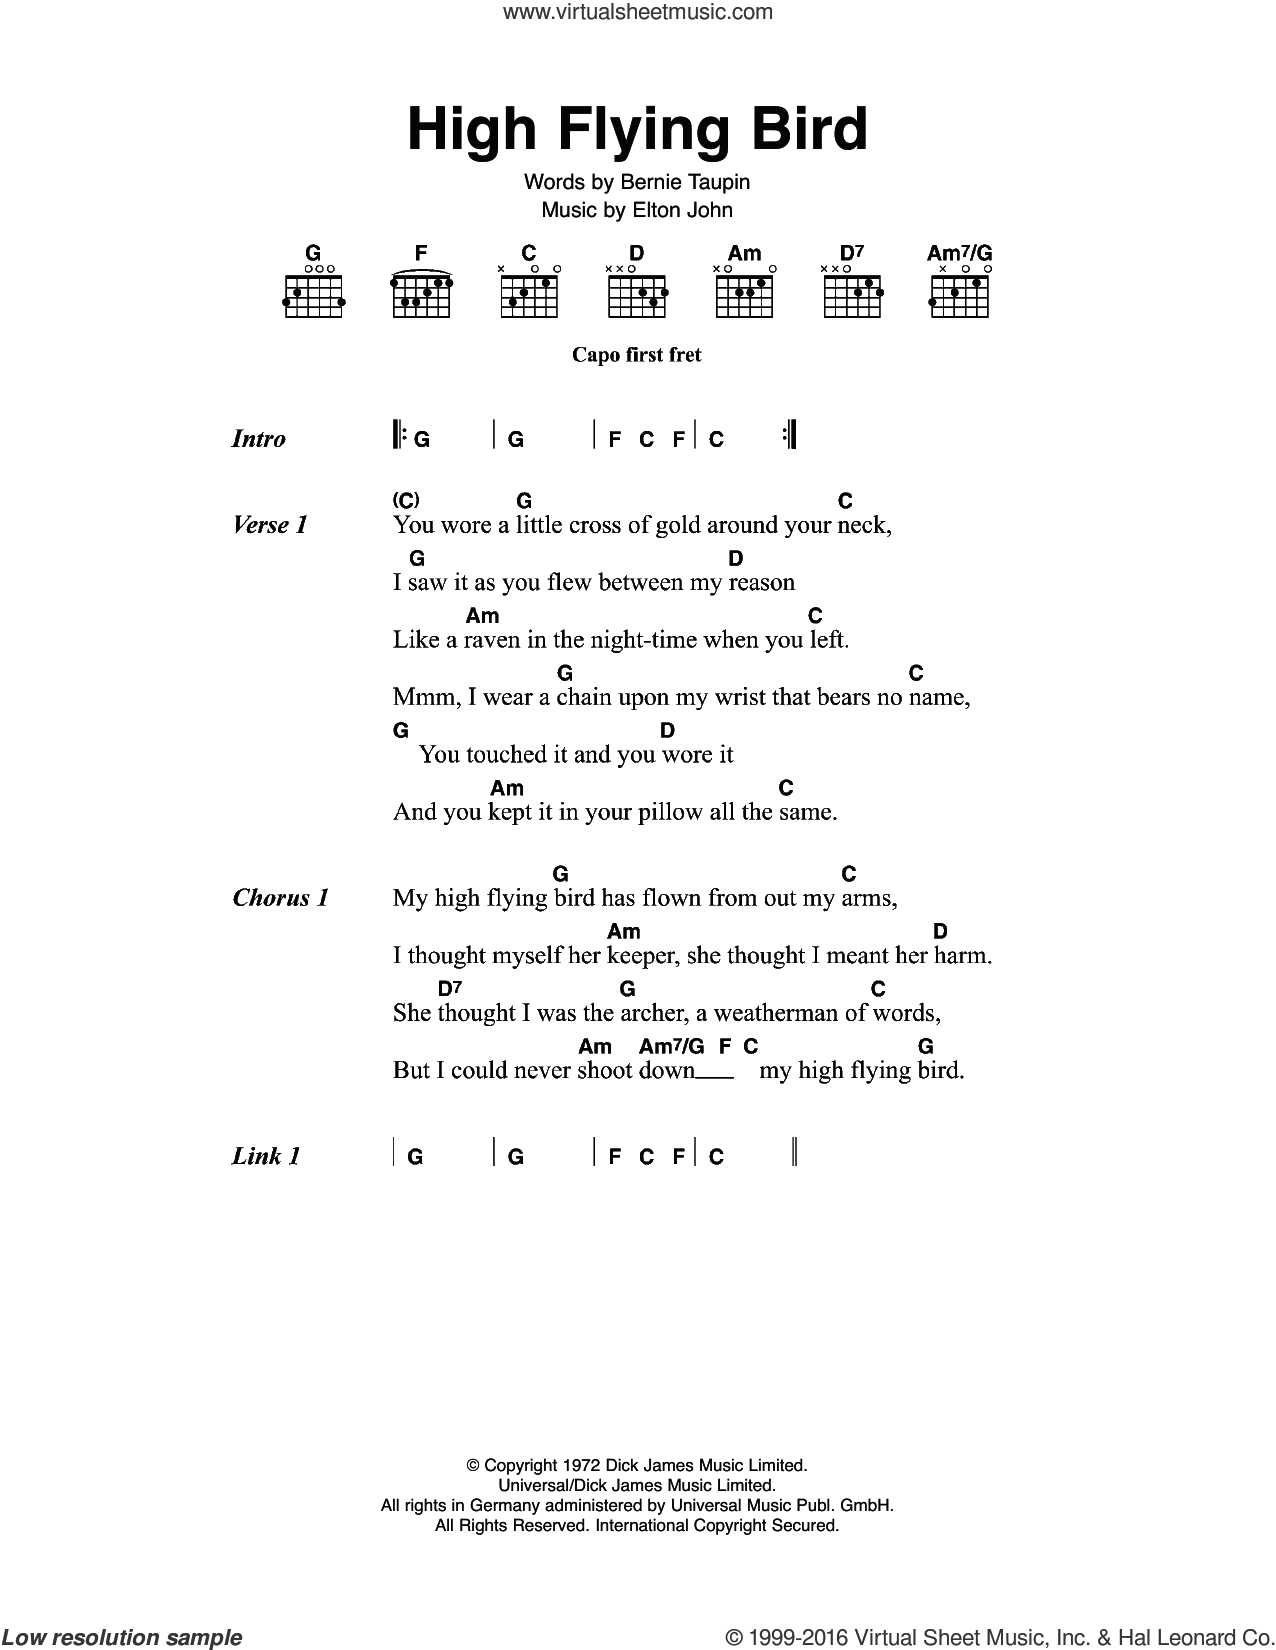 High Flying Bird sheet music for guitar (chords) by Elton John and Bernie Taupin, intermediate. Score Image Preview.